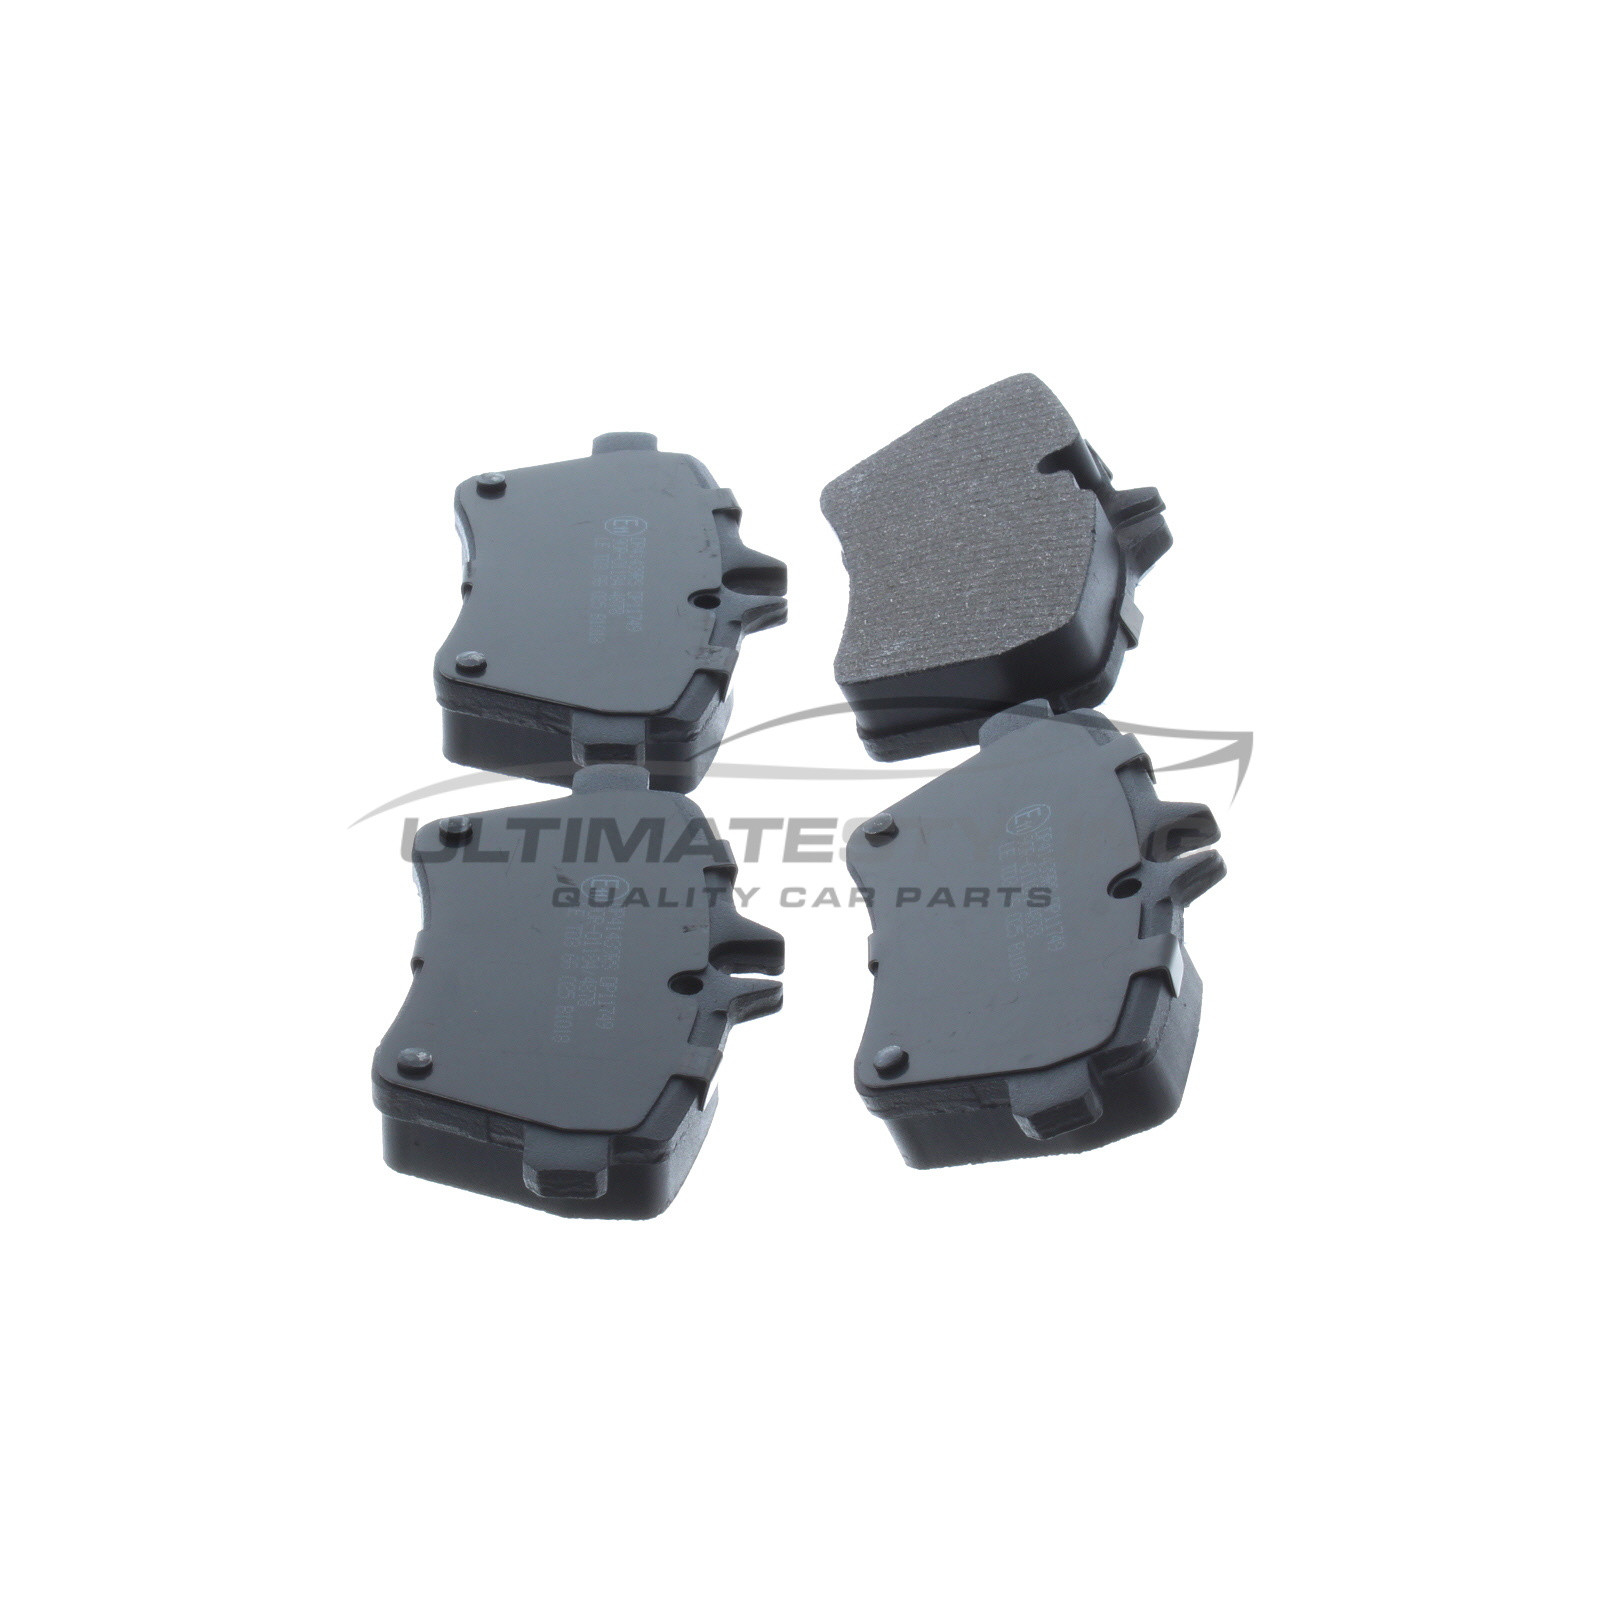 A180 1.7 OEM SPEC FRONT AND REAR PADS FOR MERCEDES-BENZ A-CLASS W169 2009-12